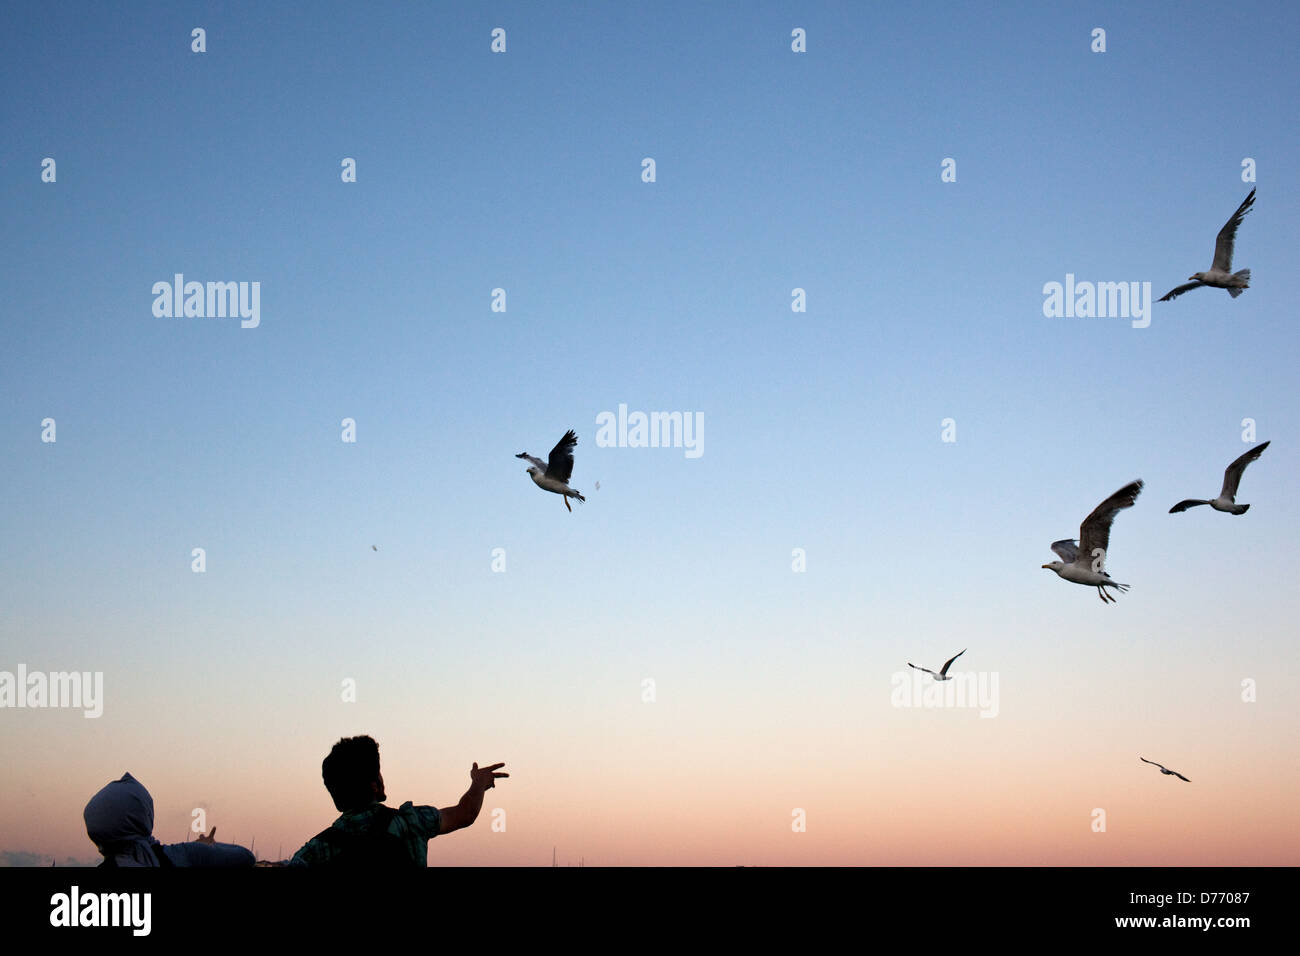 A Turkish couple feeding seagulls on a ferry ride from Kadikoy to Eminonu in Istanbul, Turkey. - Stock Image